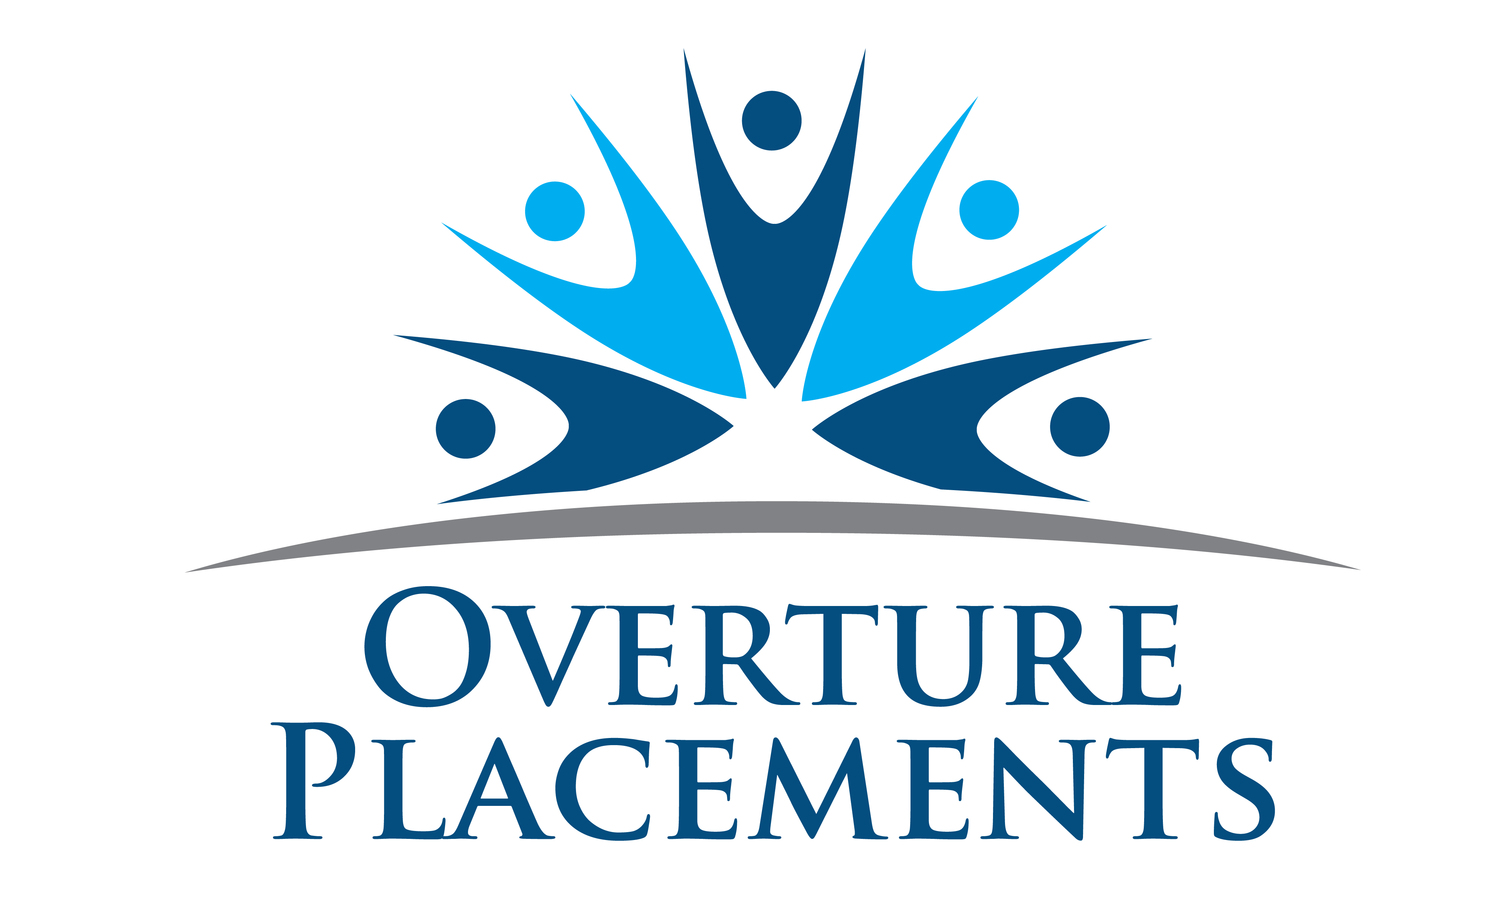 Overture Placements